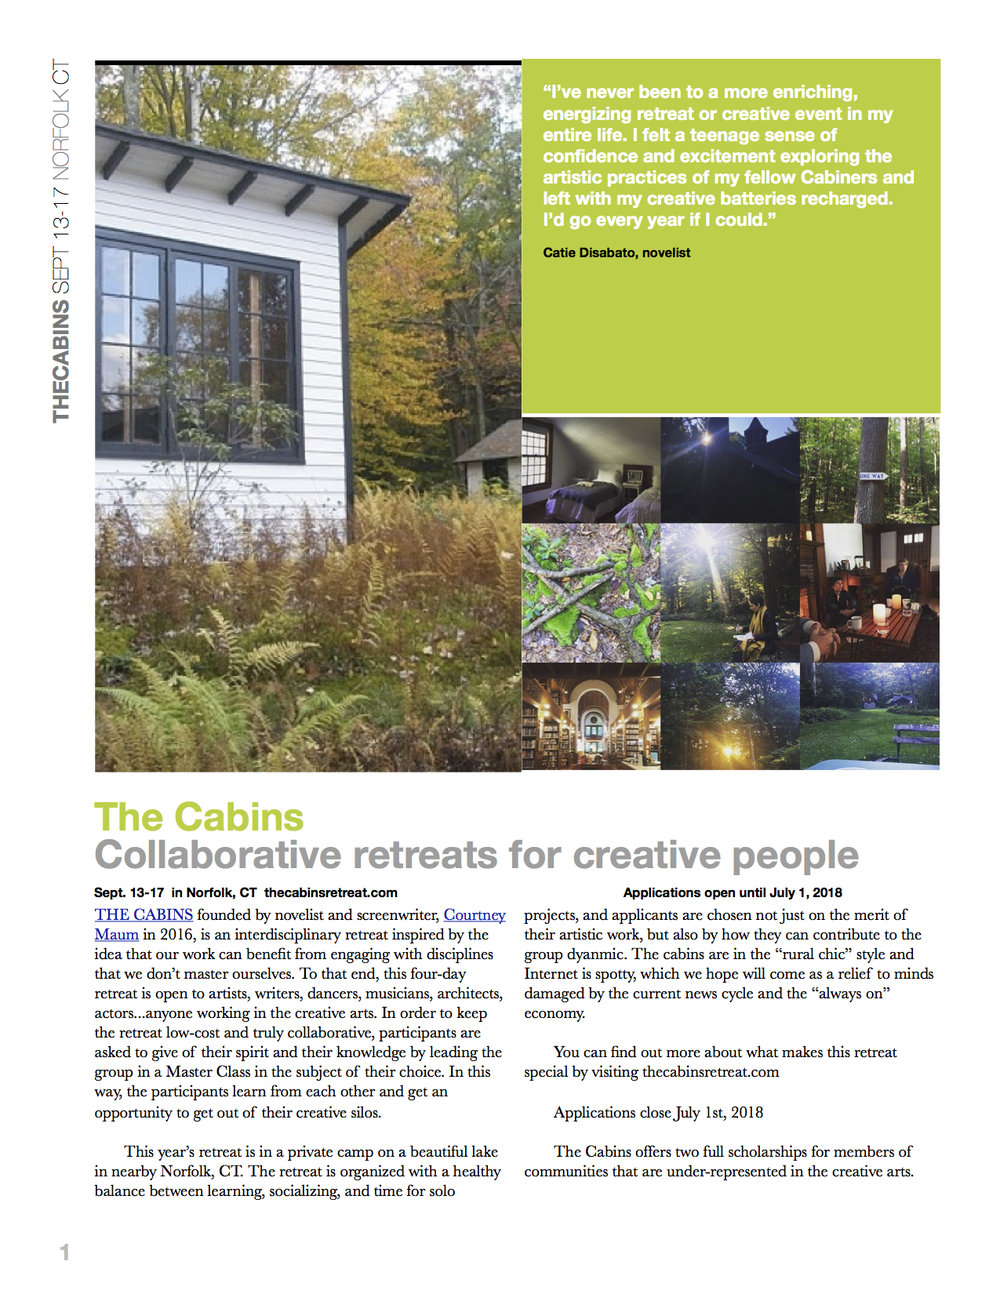 The Cabins_Information flyer 2018 copy.jpg